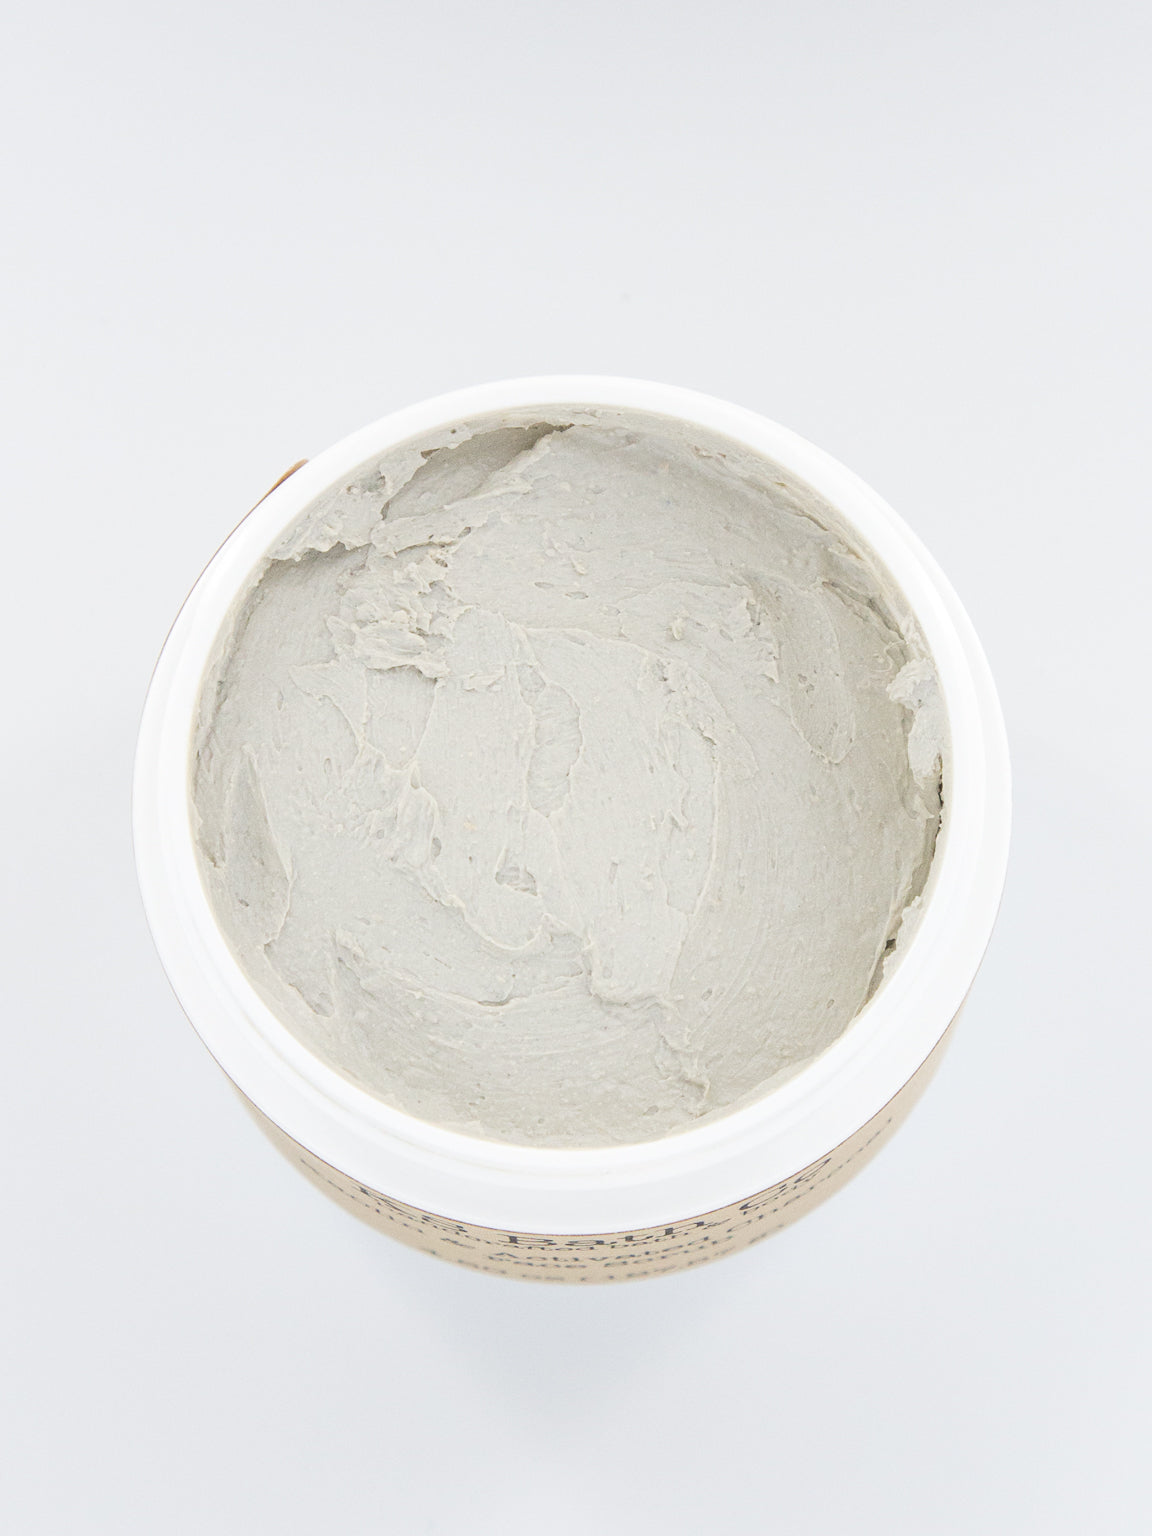 Kaolin & Activated Charcoal Face Scrub